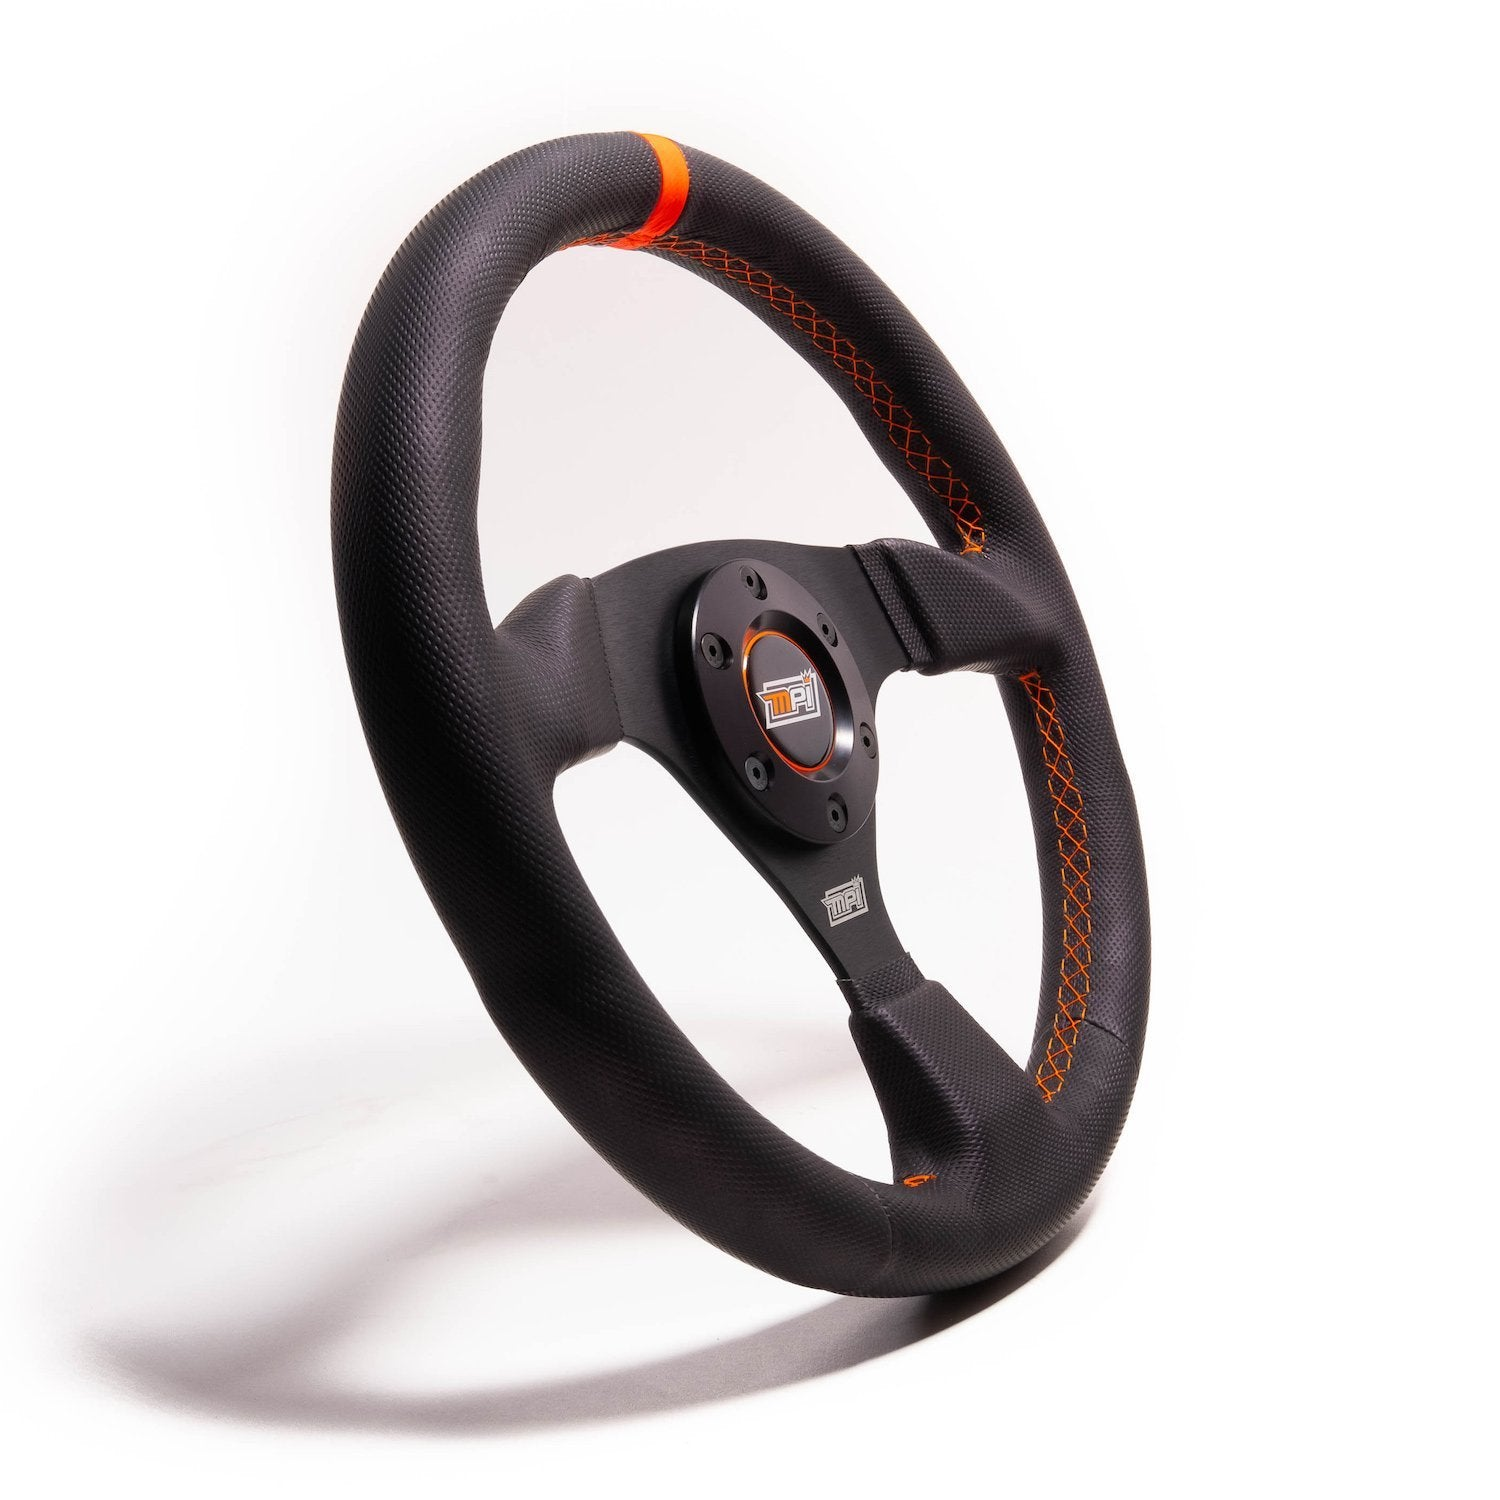 MPI Off Road/Drifting Concept Specific Steering Wheel (MPI-F-13-C-HG)-MPI-Motion Raceworks